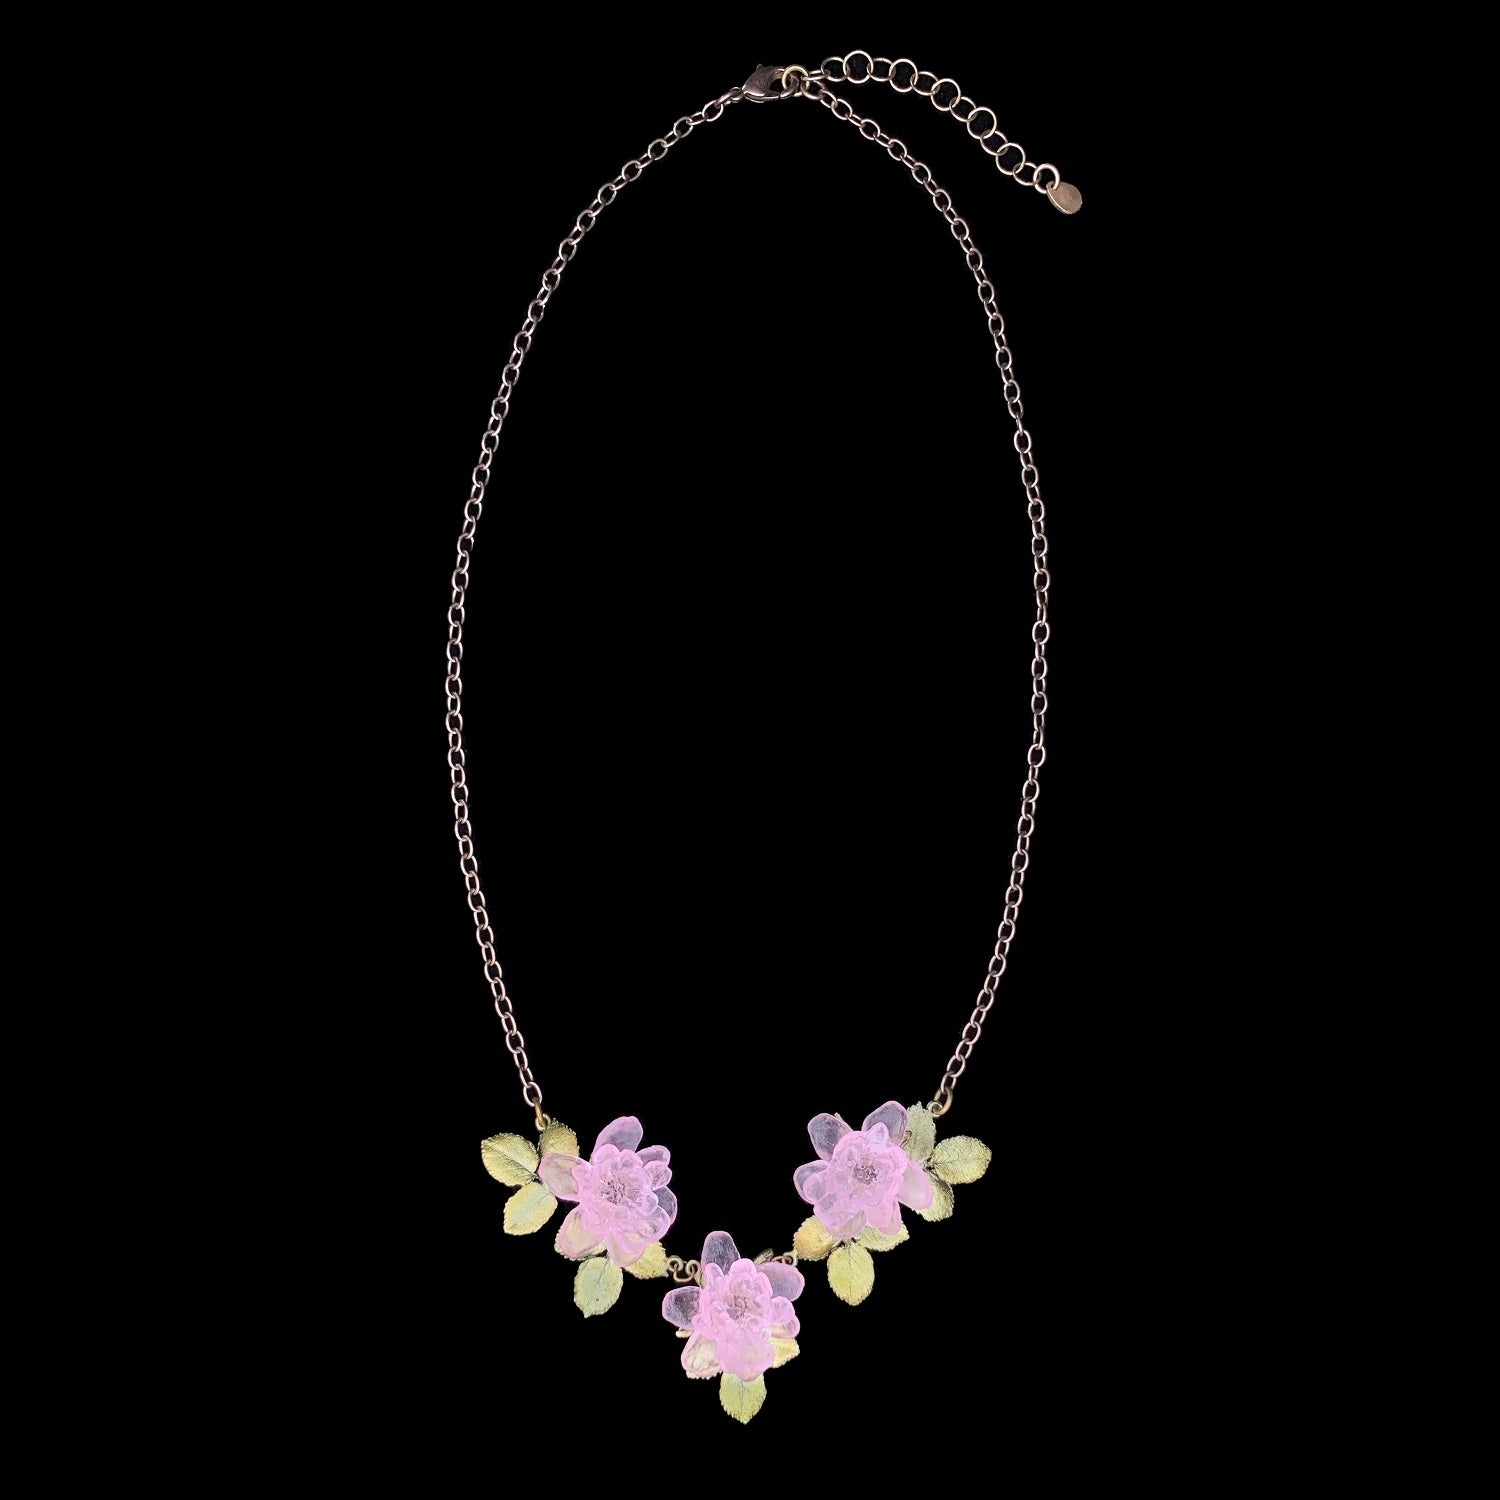 Blushing Rose Necklace - Statement